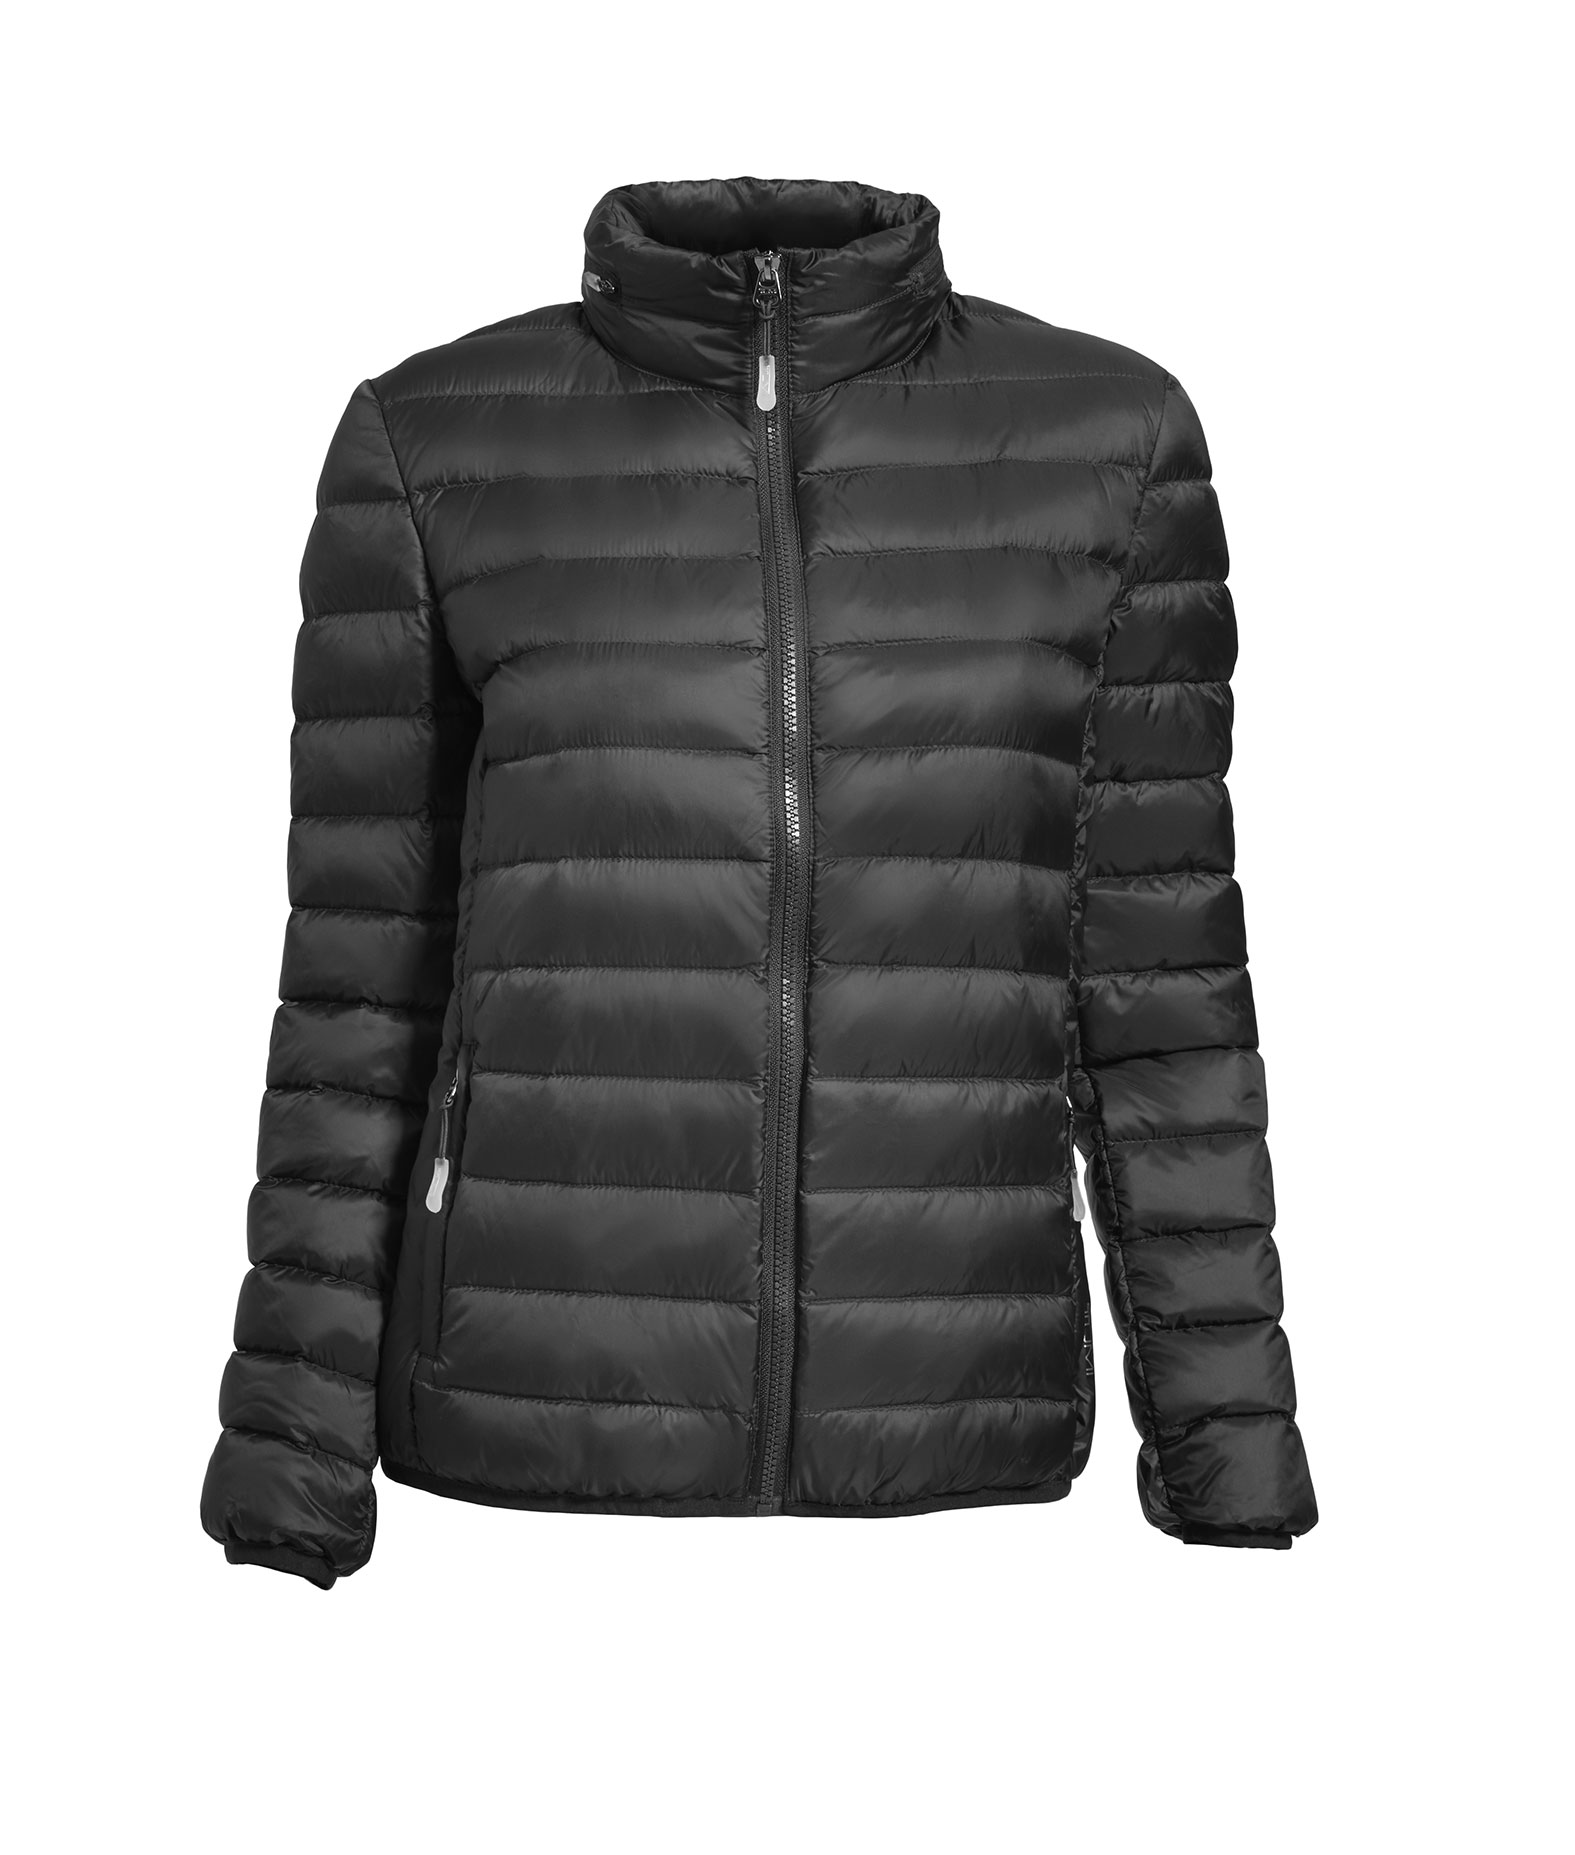 Tumi Womens Packable Travel Puffer Jacket